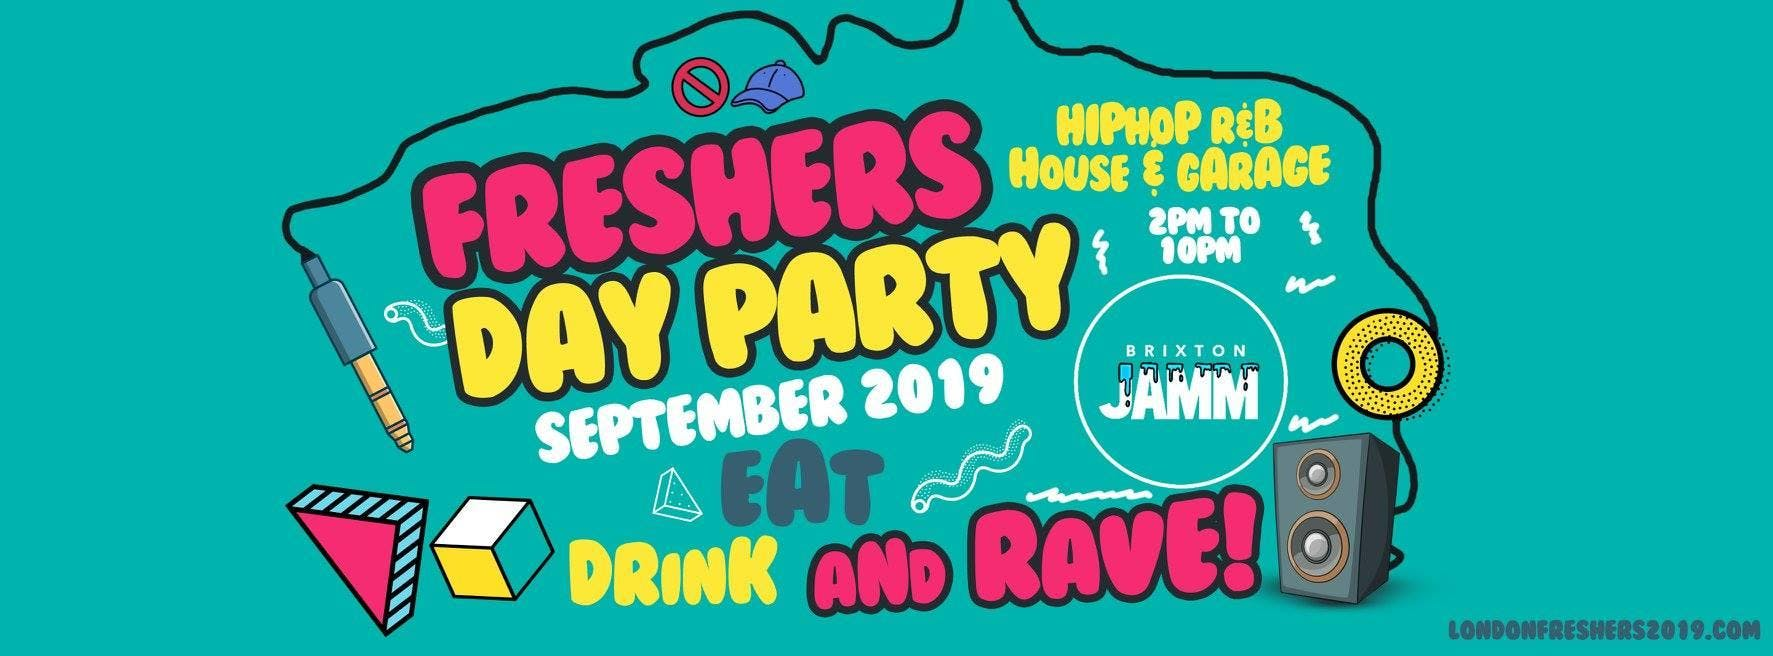 The London Freshers  Day Party 2019